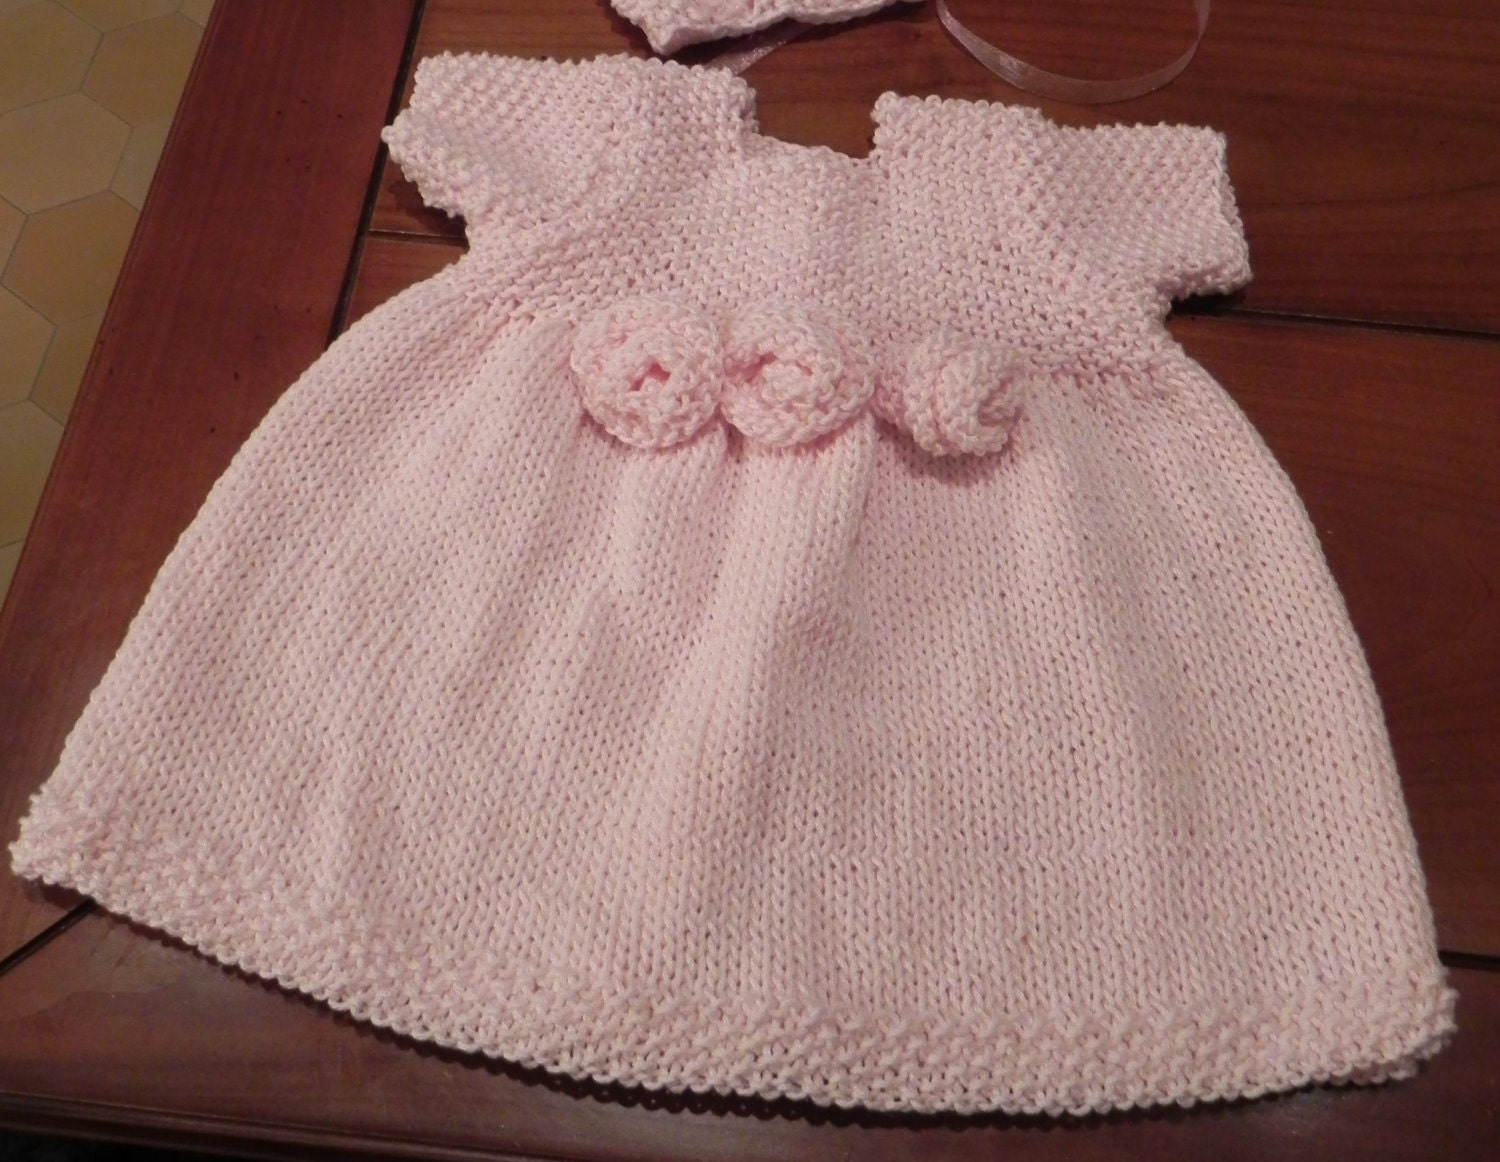 Knitting Patterns For Baby Dresses : French Rosette Baby Dress Knitting Pattern PDF by MadameSegneri